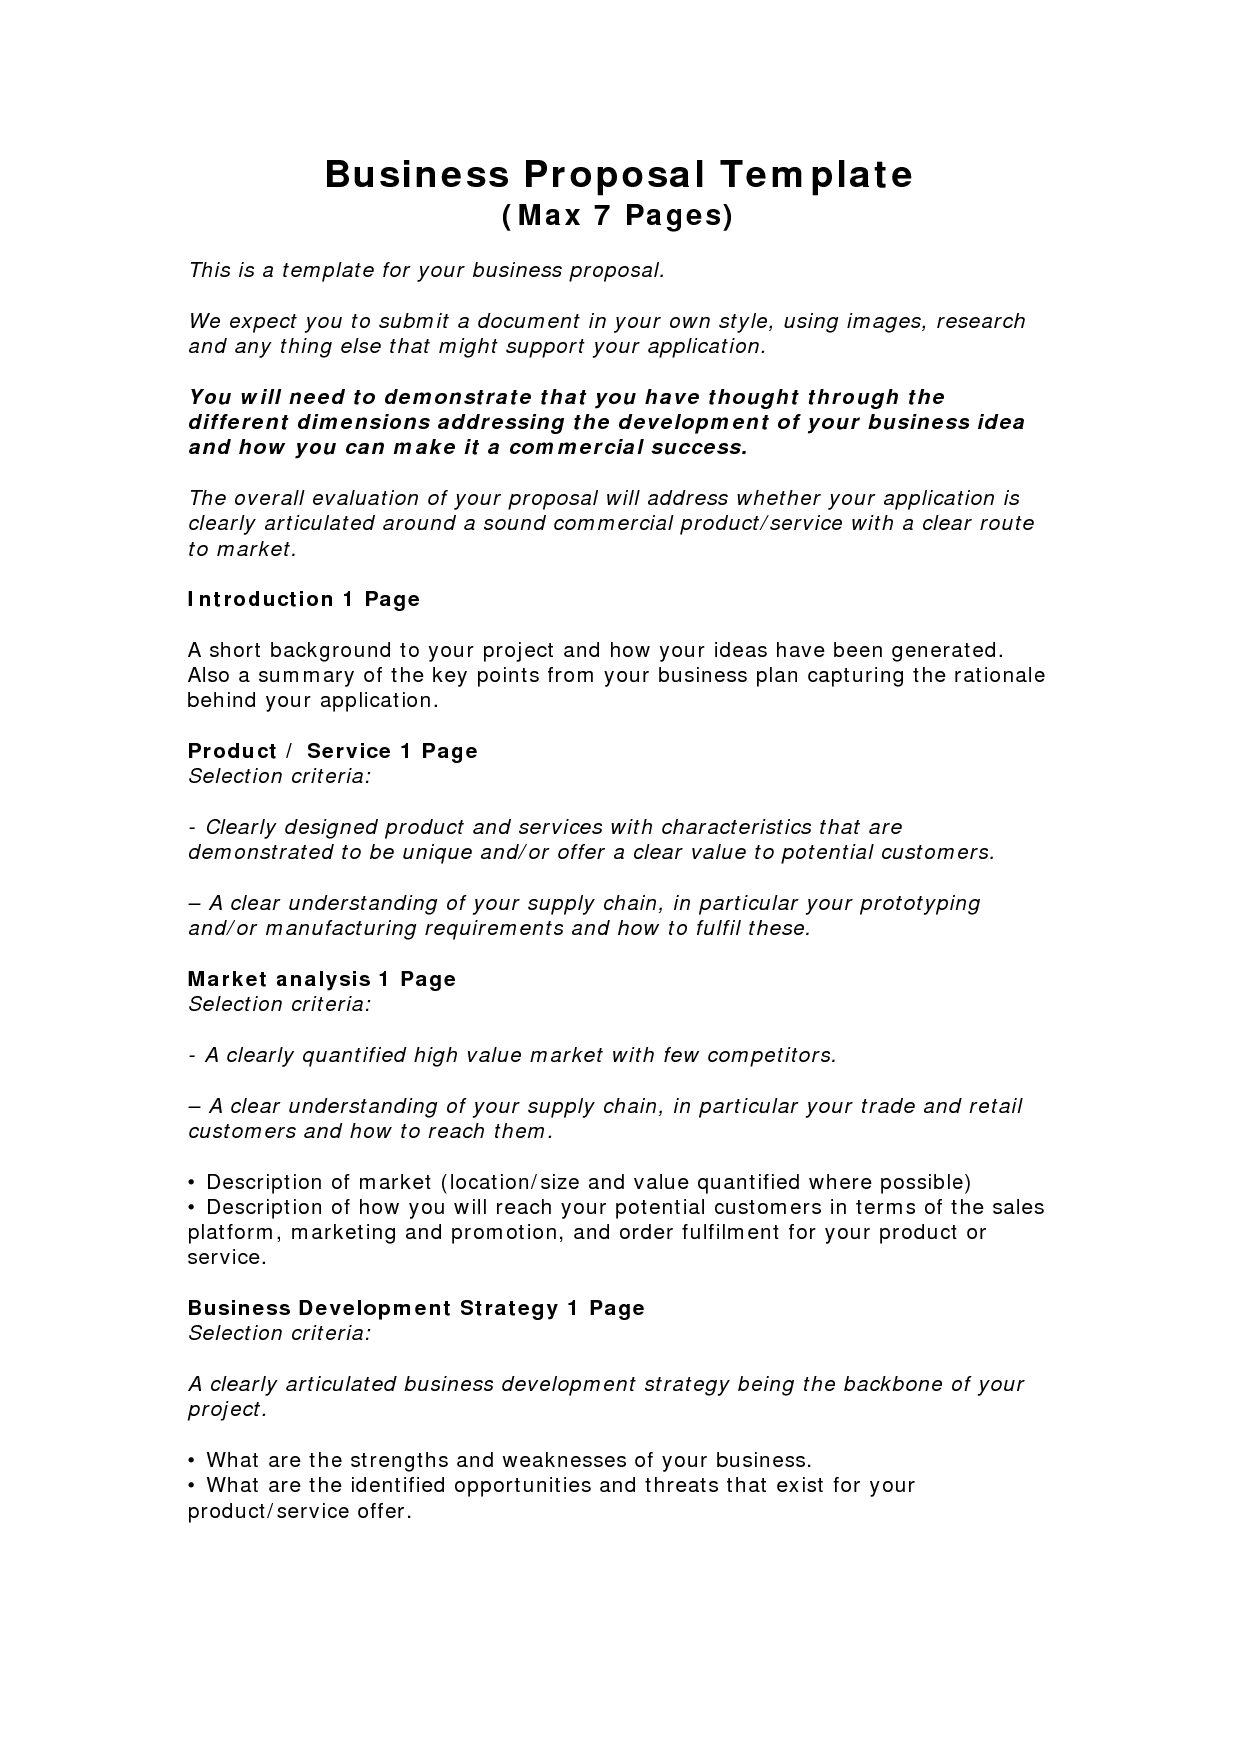 Business Proposal Templates Examples | Business Proposal Template ...